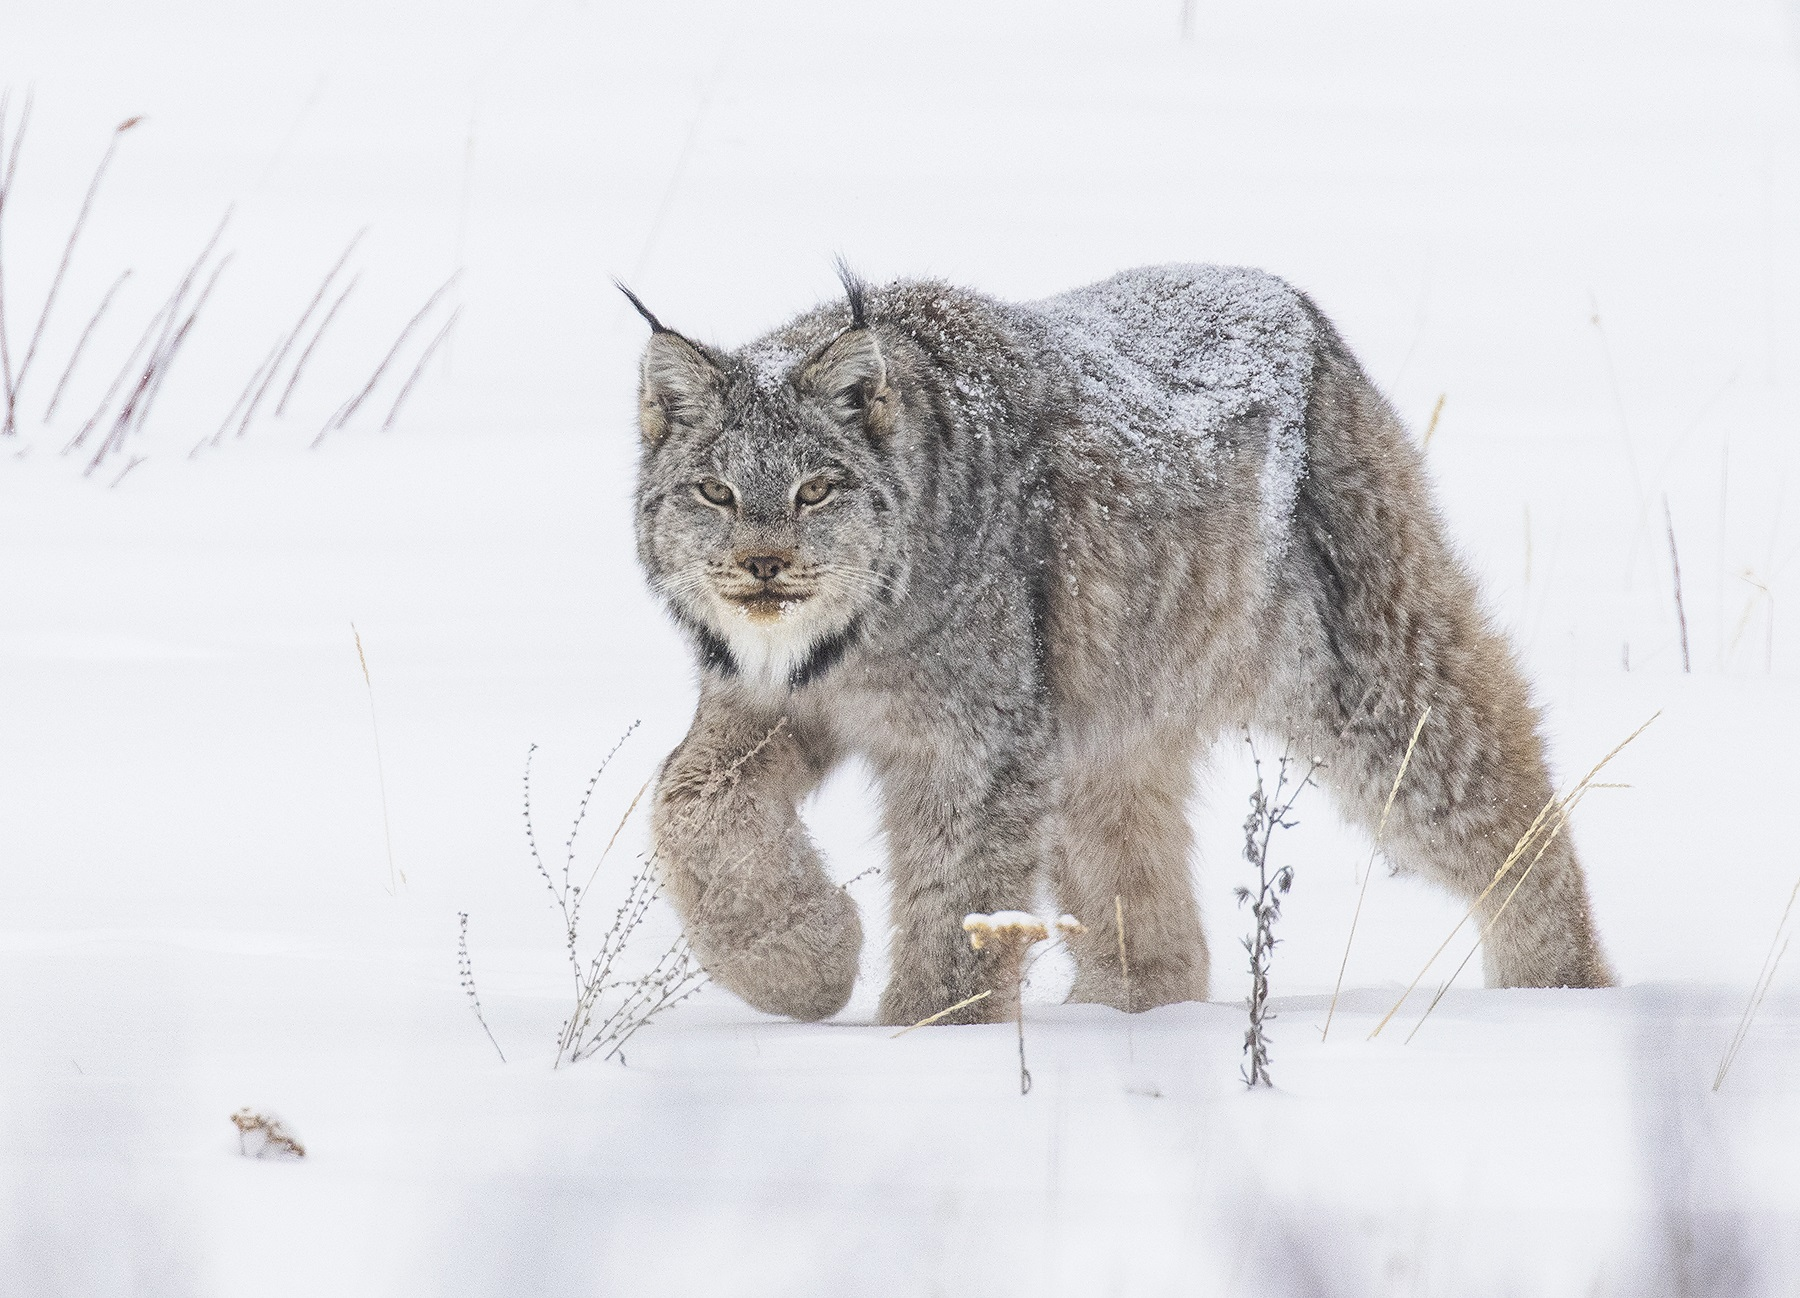 CANADIAN LYNX DAVID HEMMINGS PHOTO TOURS